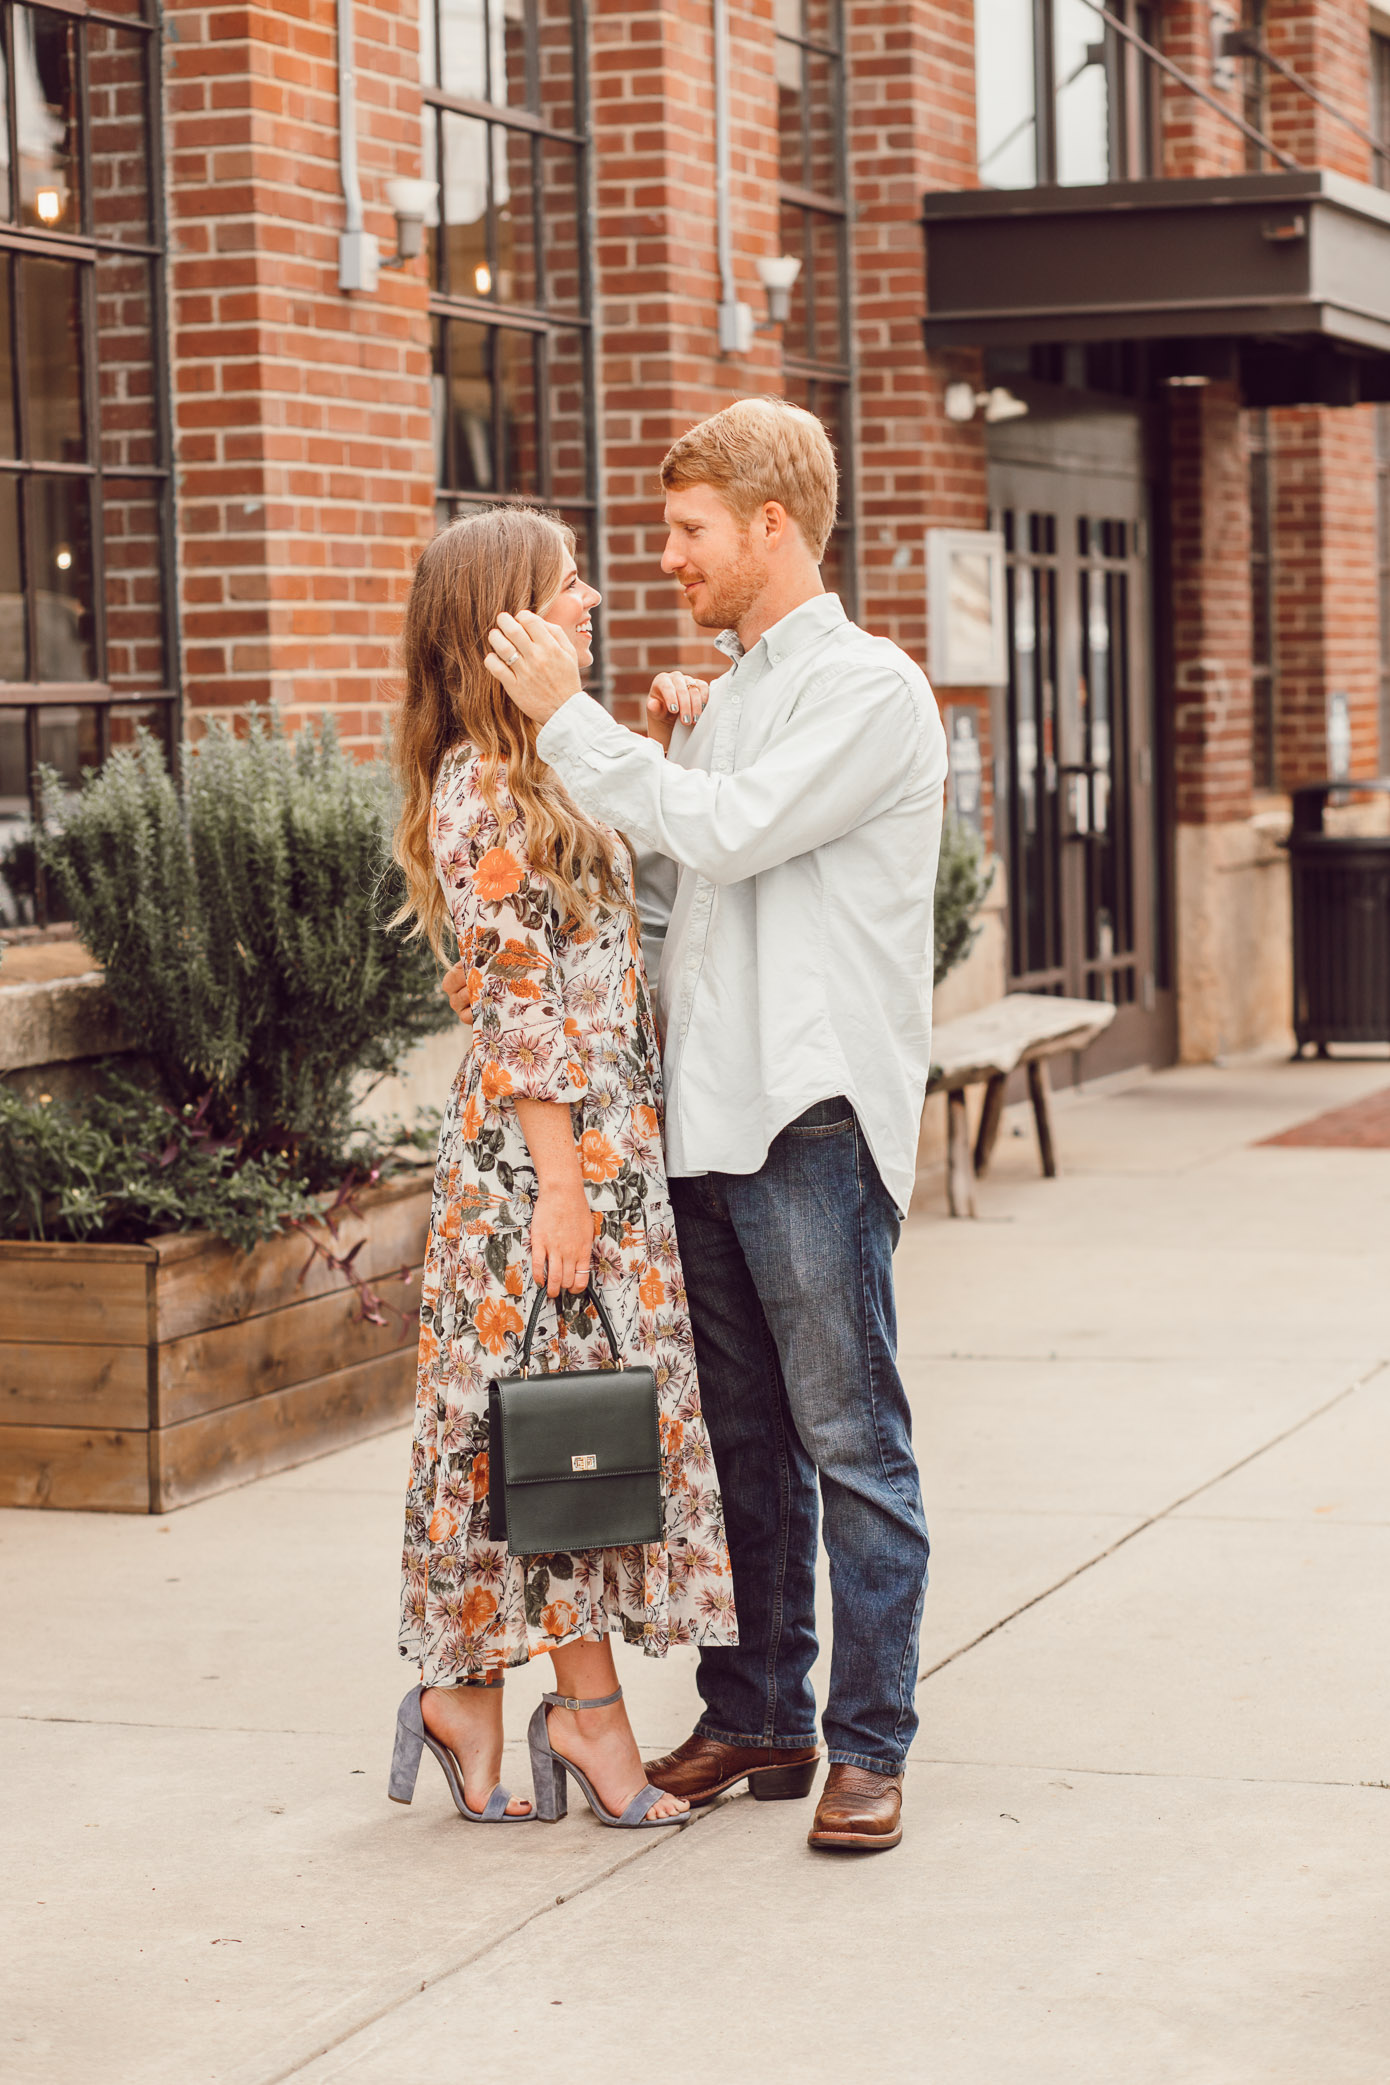 Fall Floral Midi Dress for Date Night | Date Night Beauty Tips featured on Louella Reese Blog